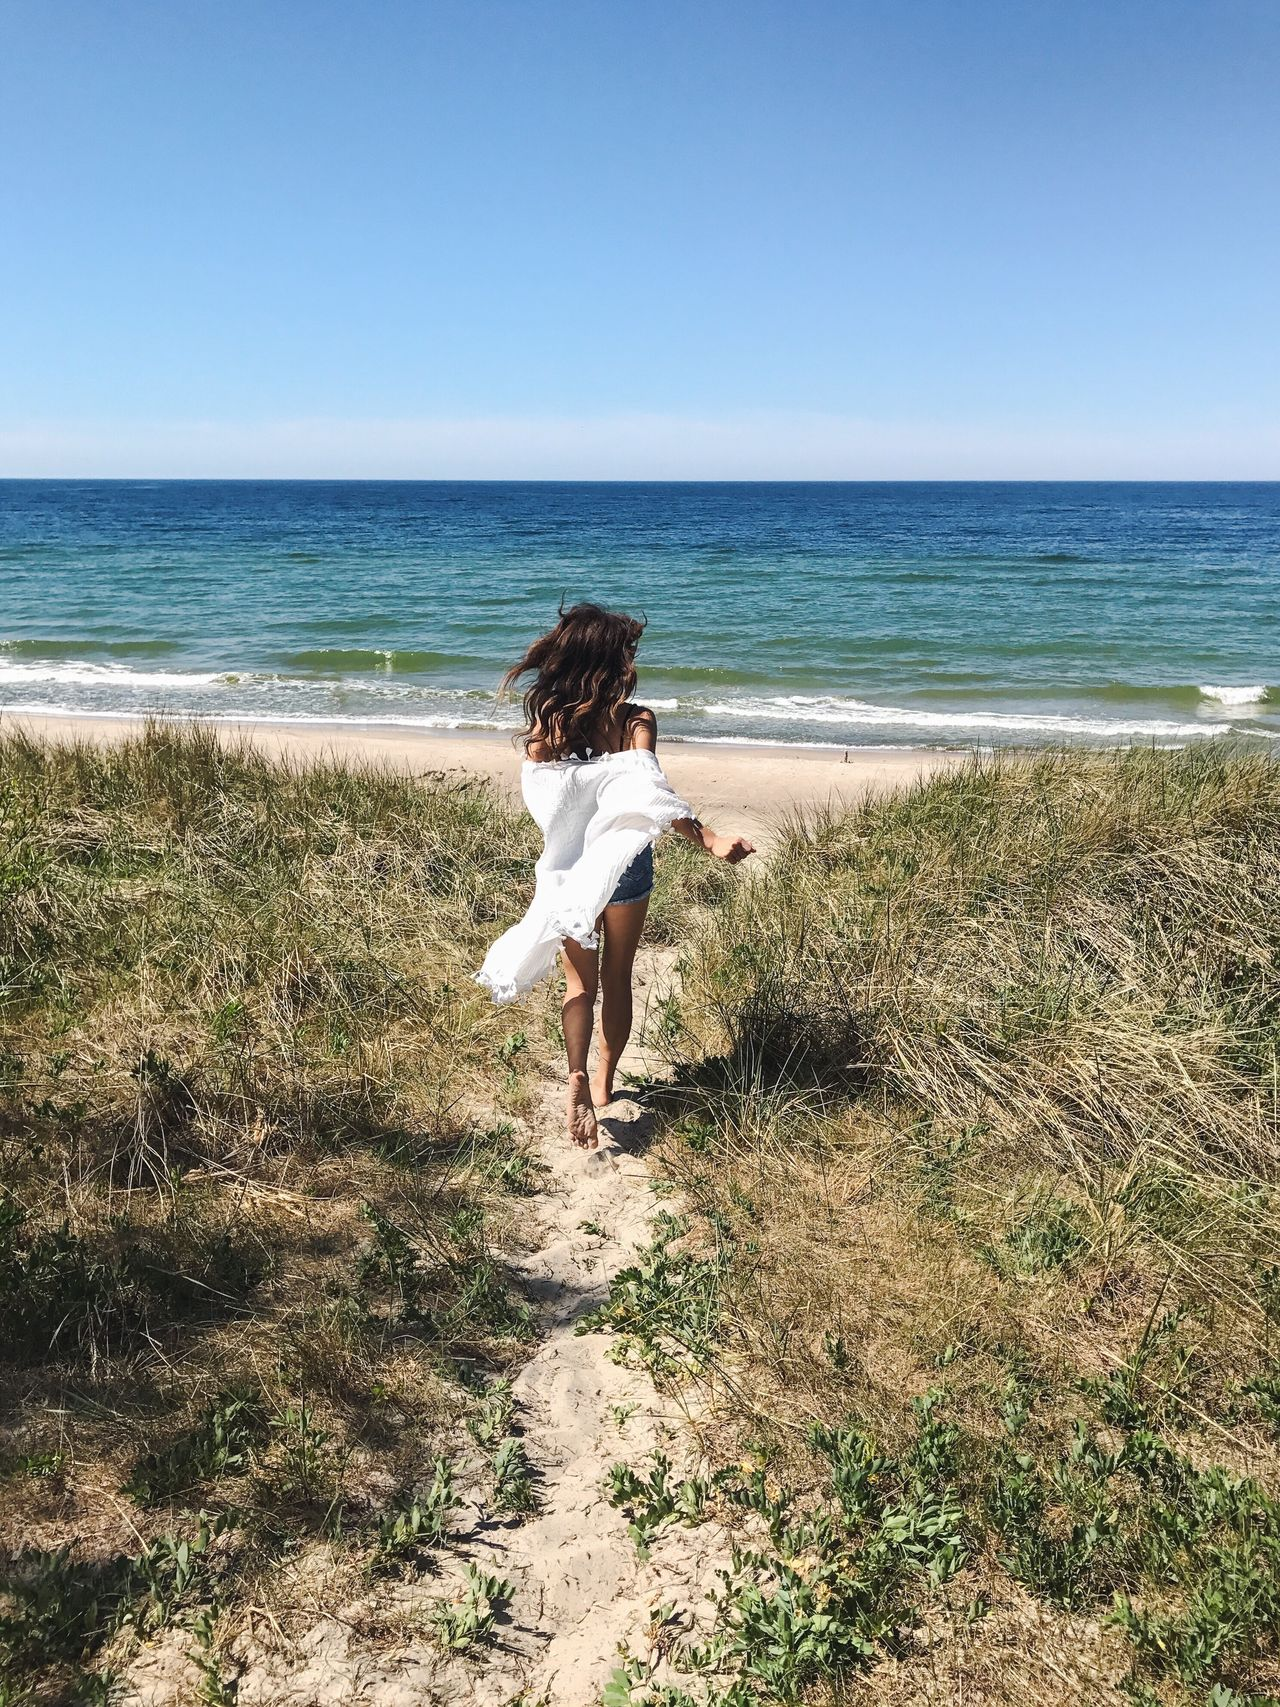 Sea Horizon Over Water Beach One Person Nature Running One Woman Only Baltic Sea Curonian Spit Sand Dune Russian Nature Full Length Water Real People Rear View Day Scenics Clear Sky Beauty In Nature Leisure Activity Sand Vacations Tranquil Scene Tranquility Outdoors